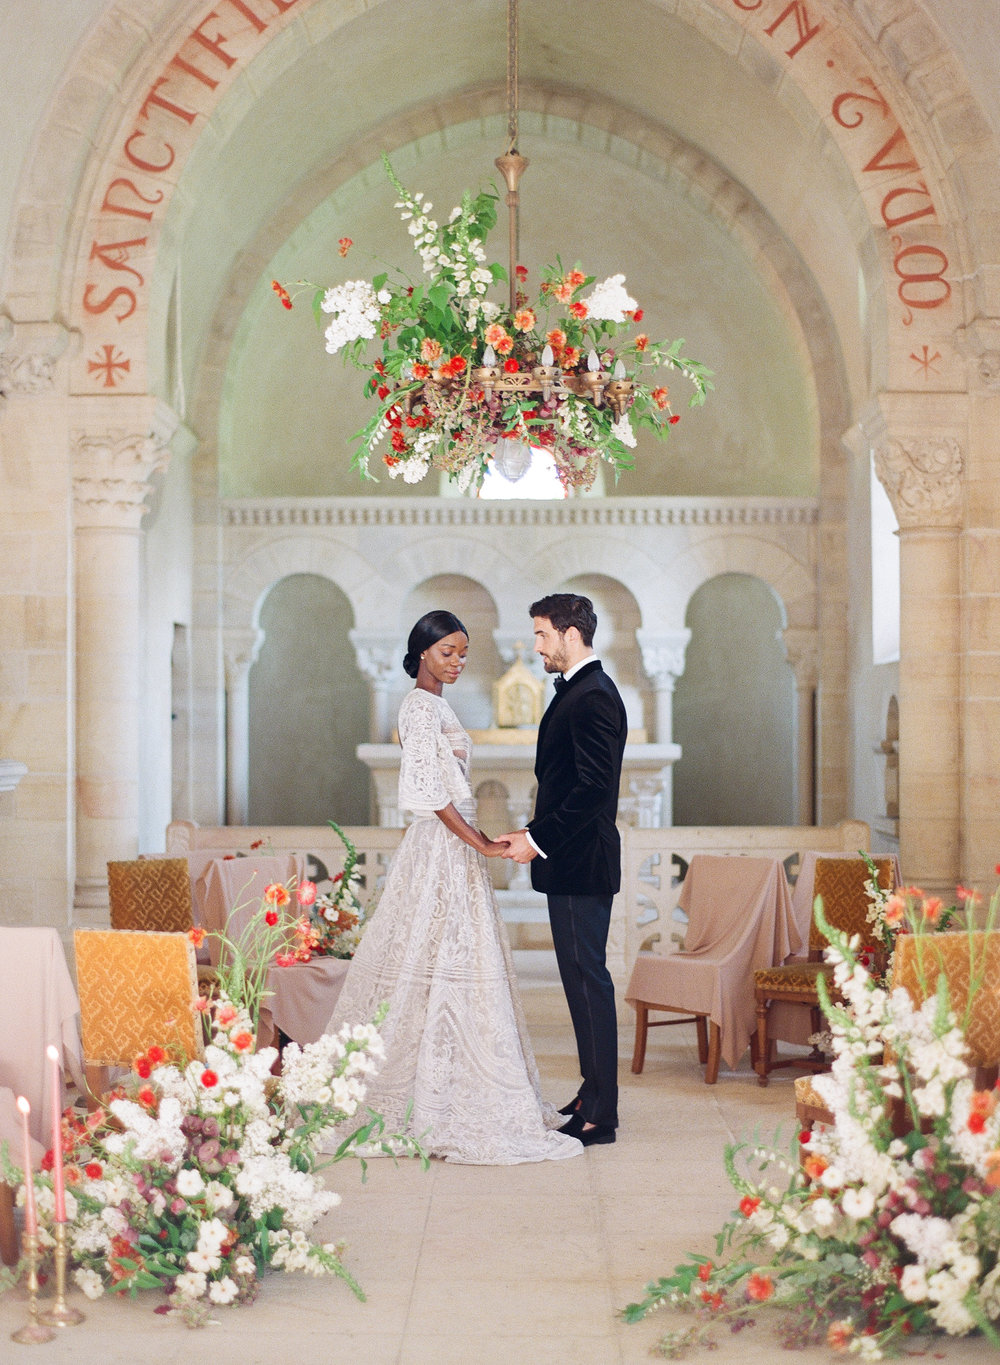 An intimate wedding ceremony at Chateau de Varennes in Burgundy, France; Sylvie Gil Photography